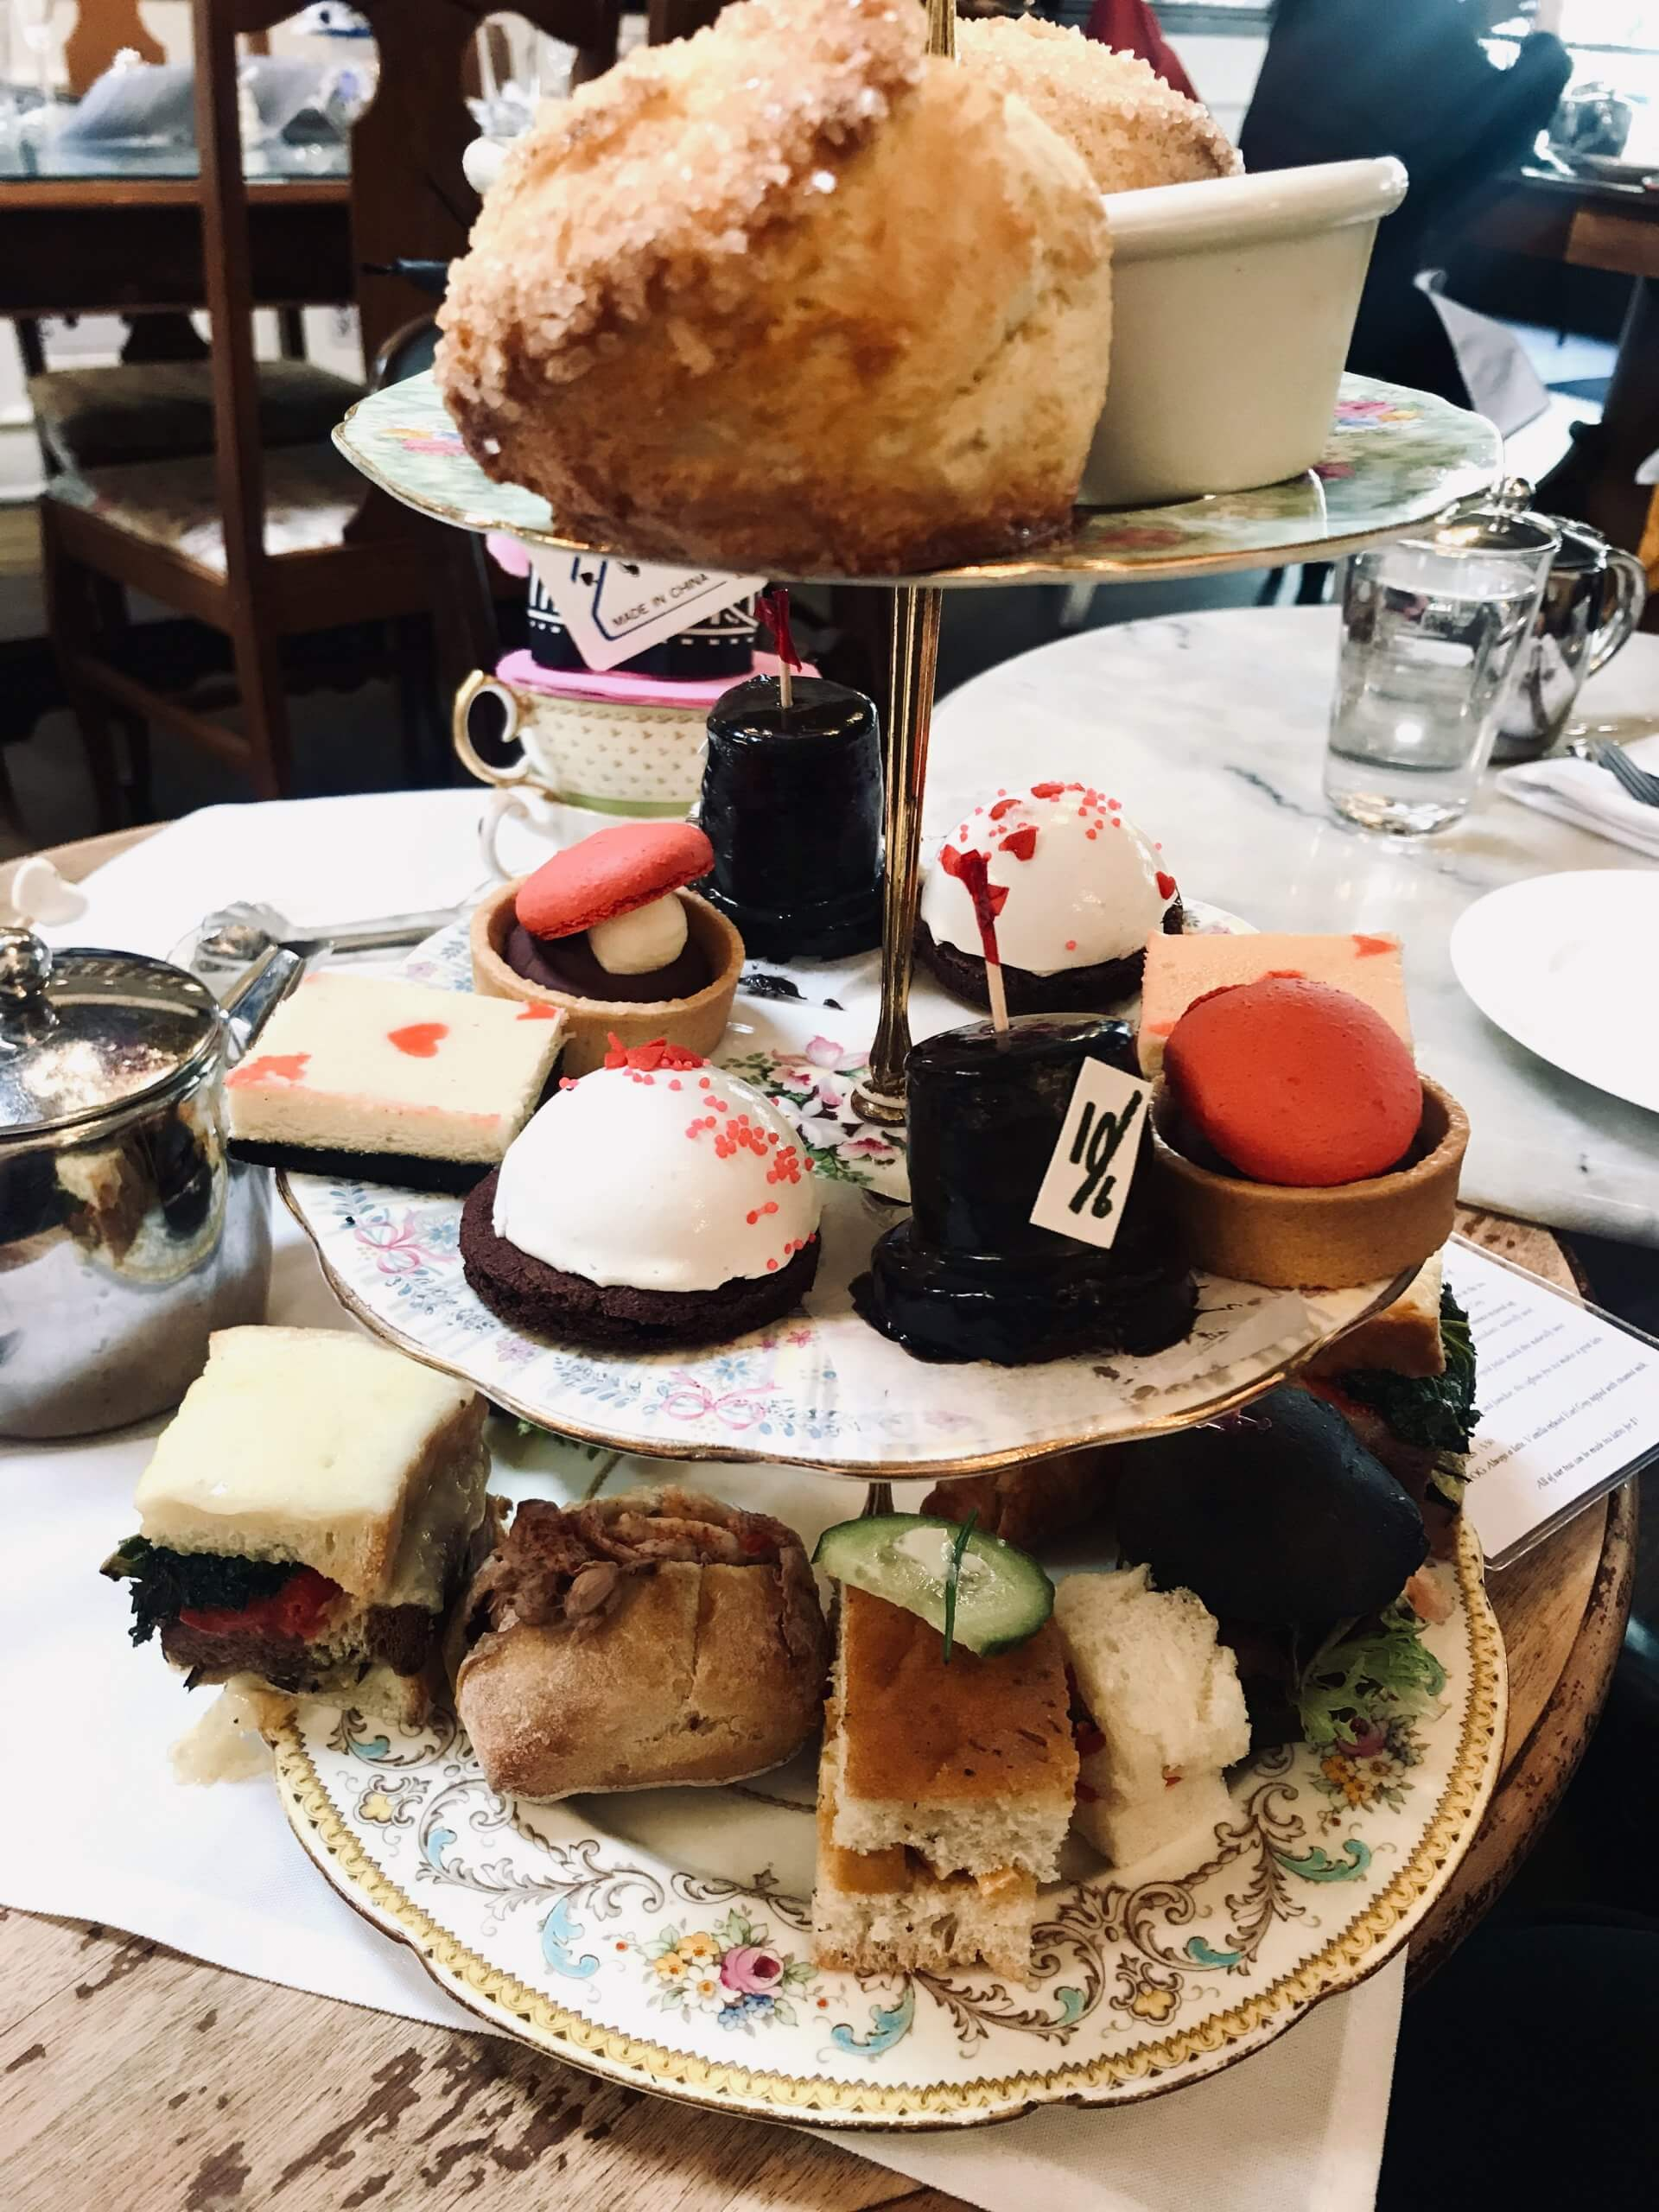 High tea tray, with the 3 different layers